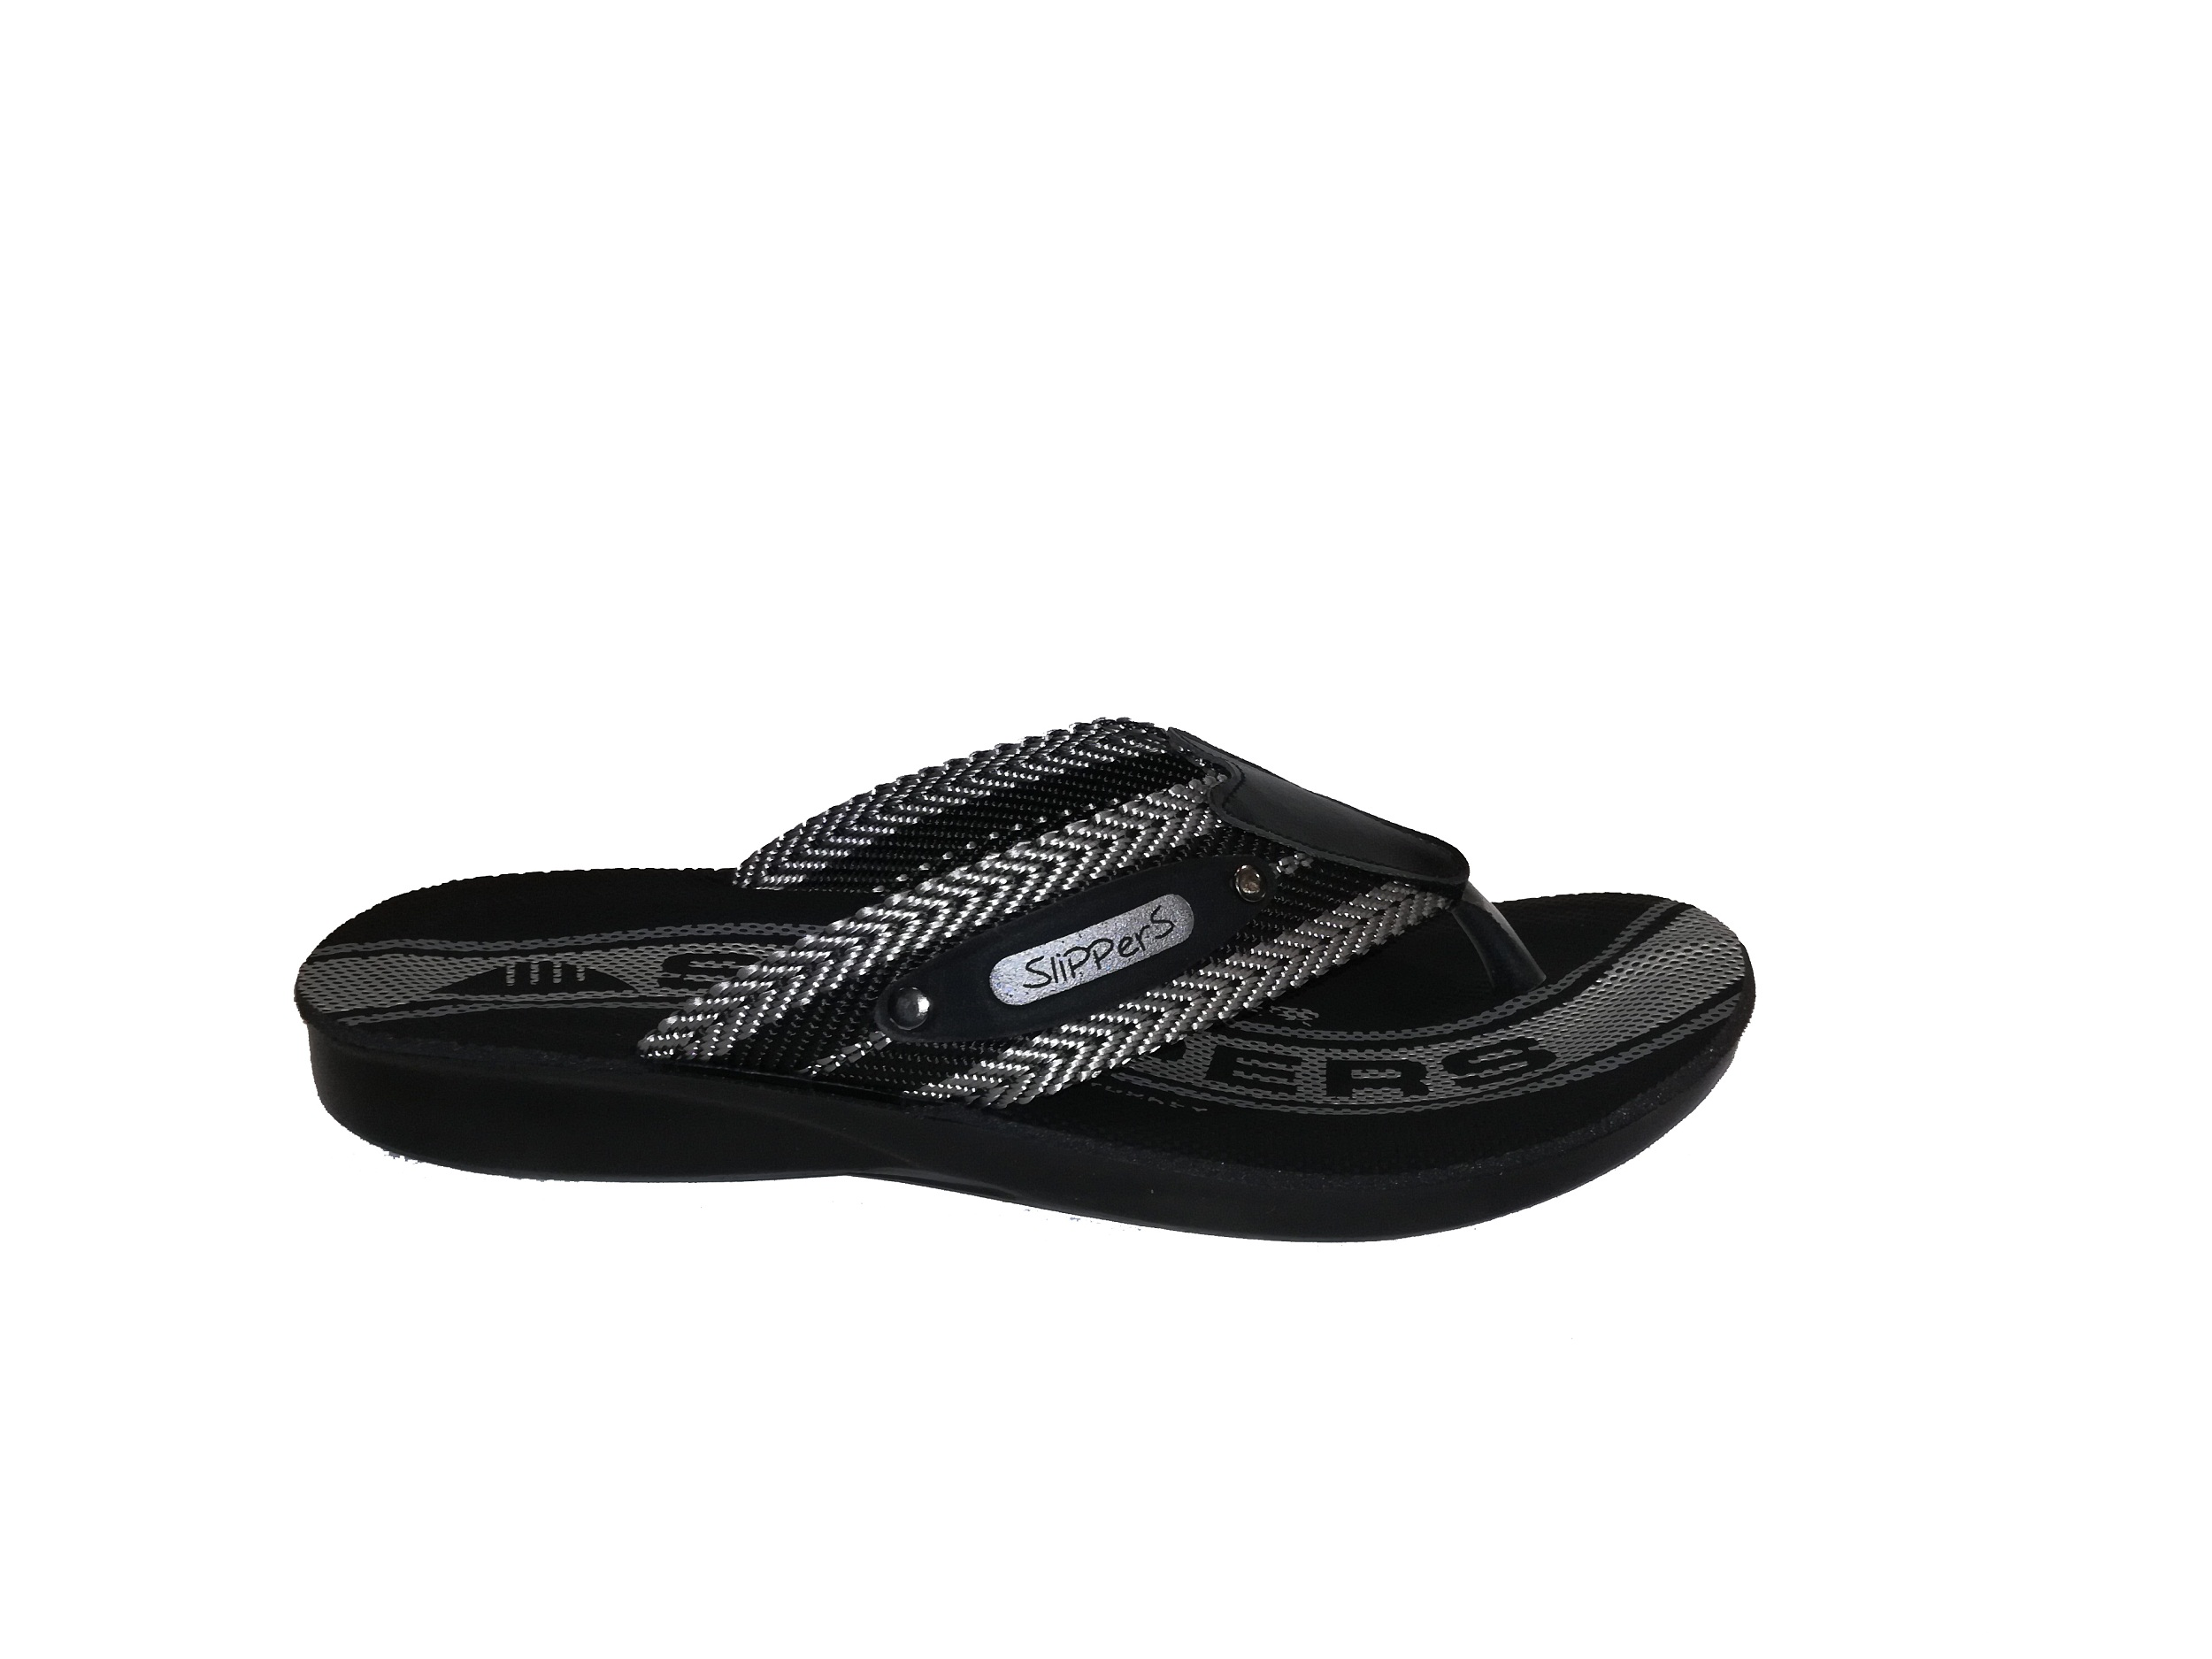 56720 Mne SLIPPERS BLACK-GREY